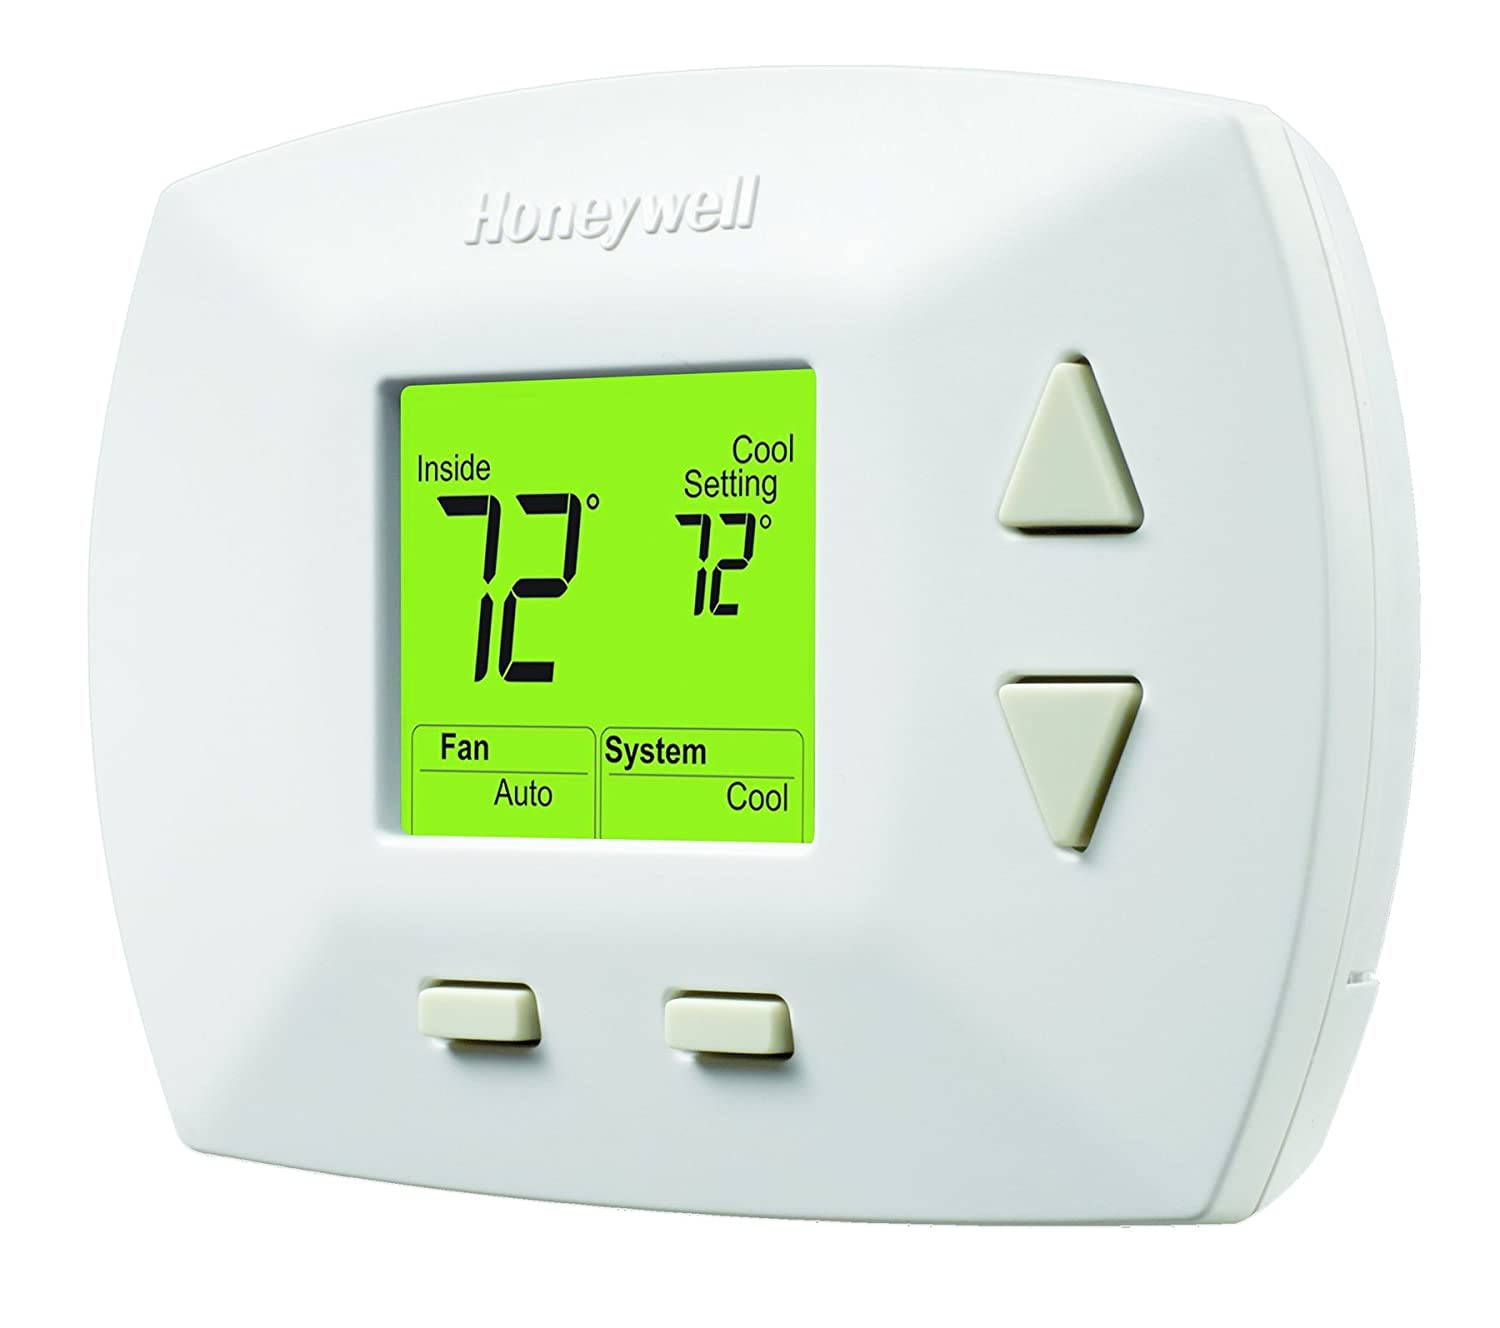 Honeywell Rth5100b 1025 Deluxe Manual Thermostat Programmable Th5110d1022 Wiring Diagram Household Thermostats